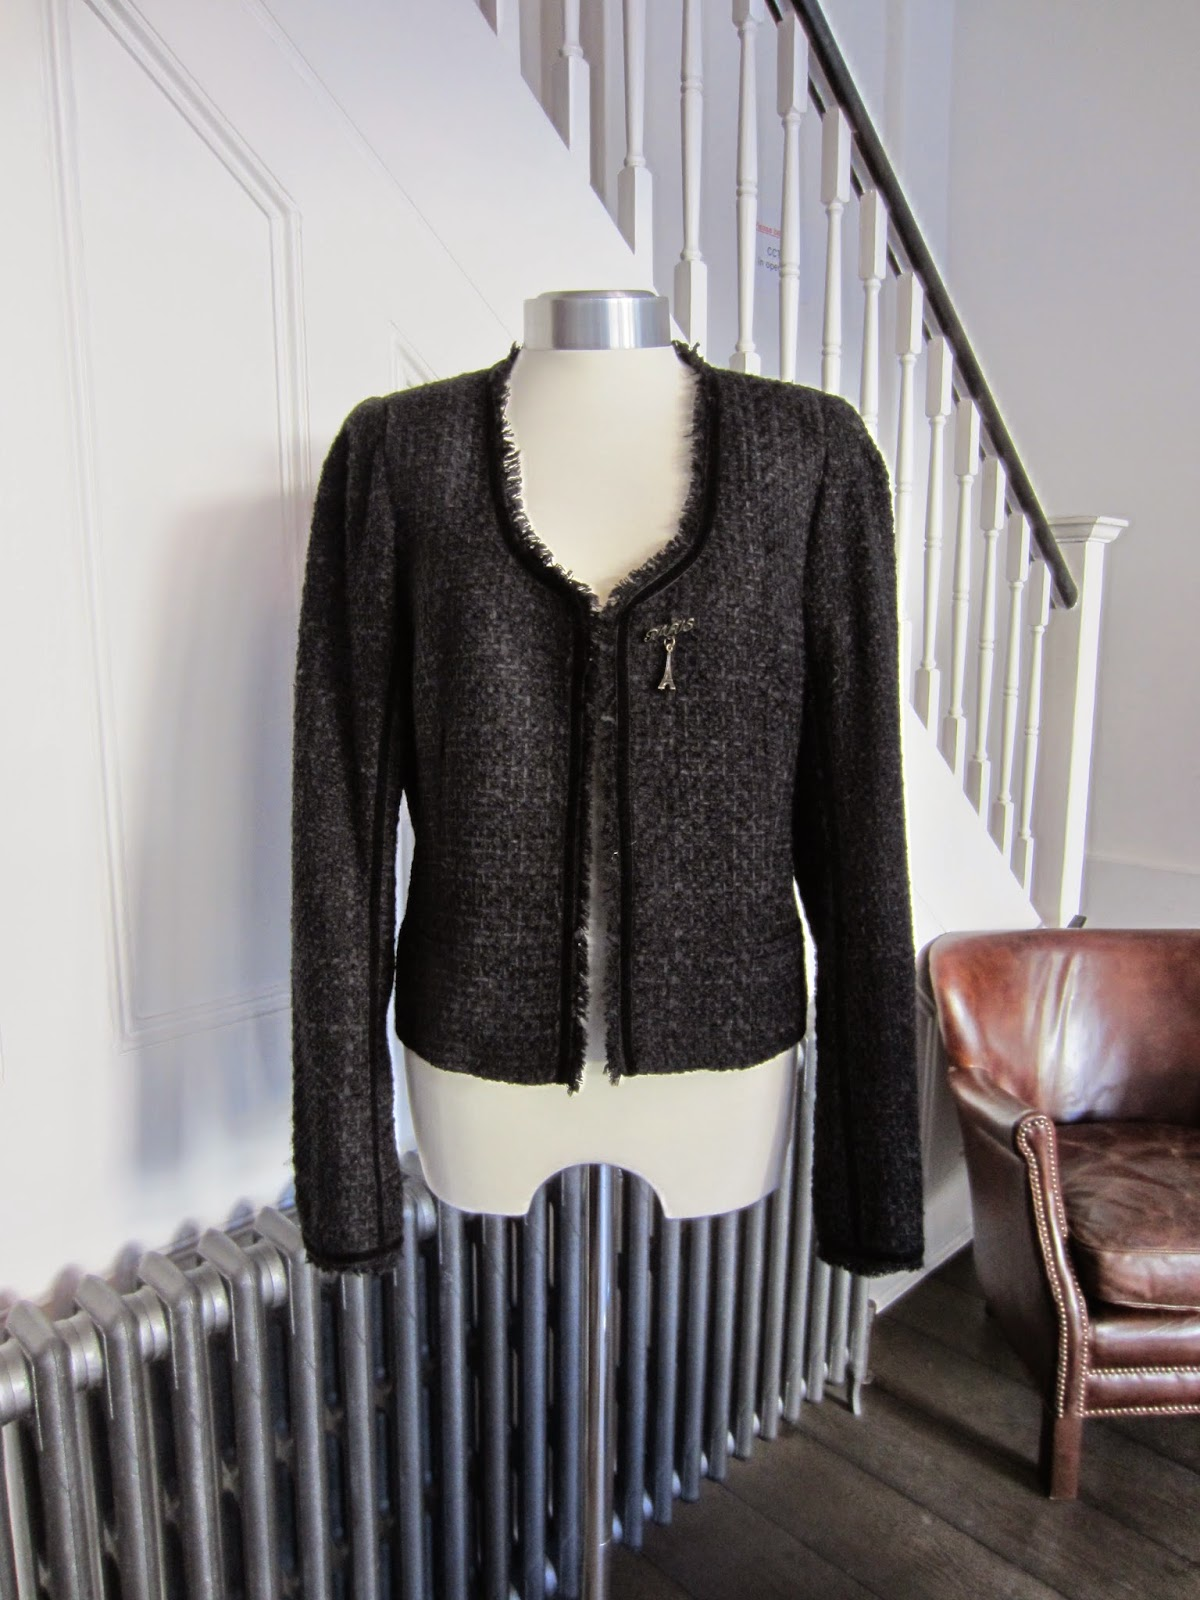 Maison Scotch Black Boucle Jacket with Paris Brooch